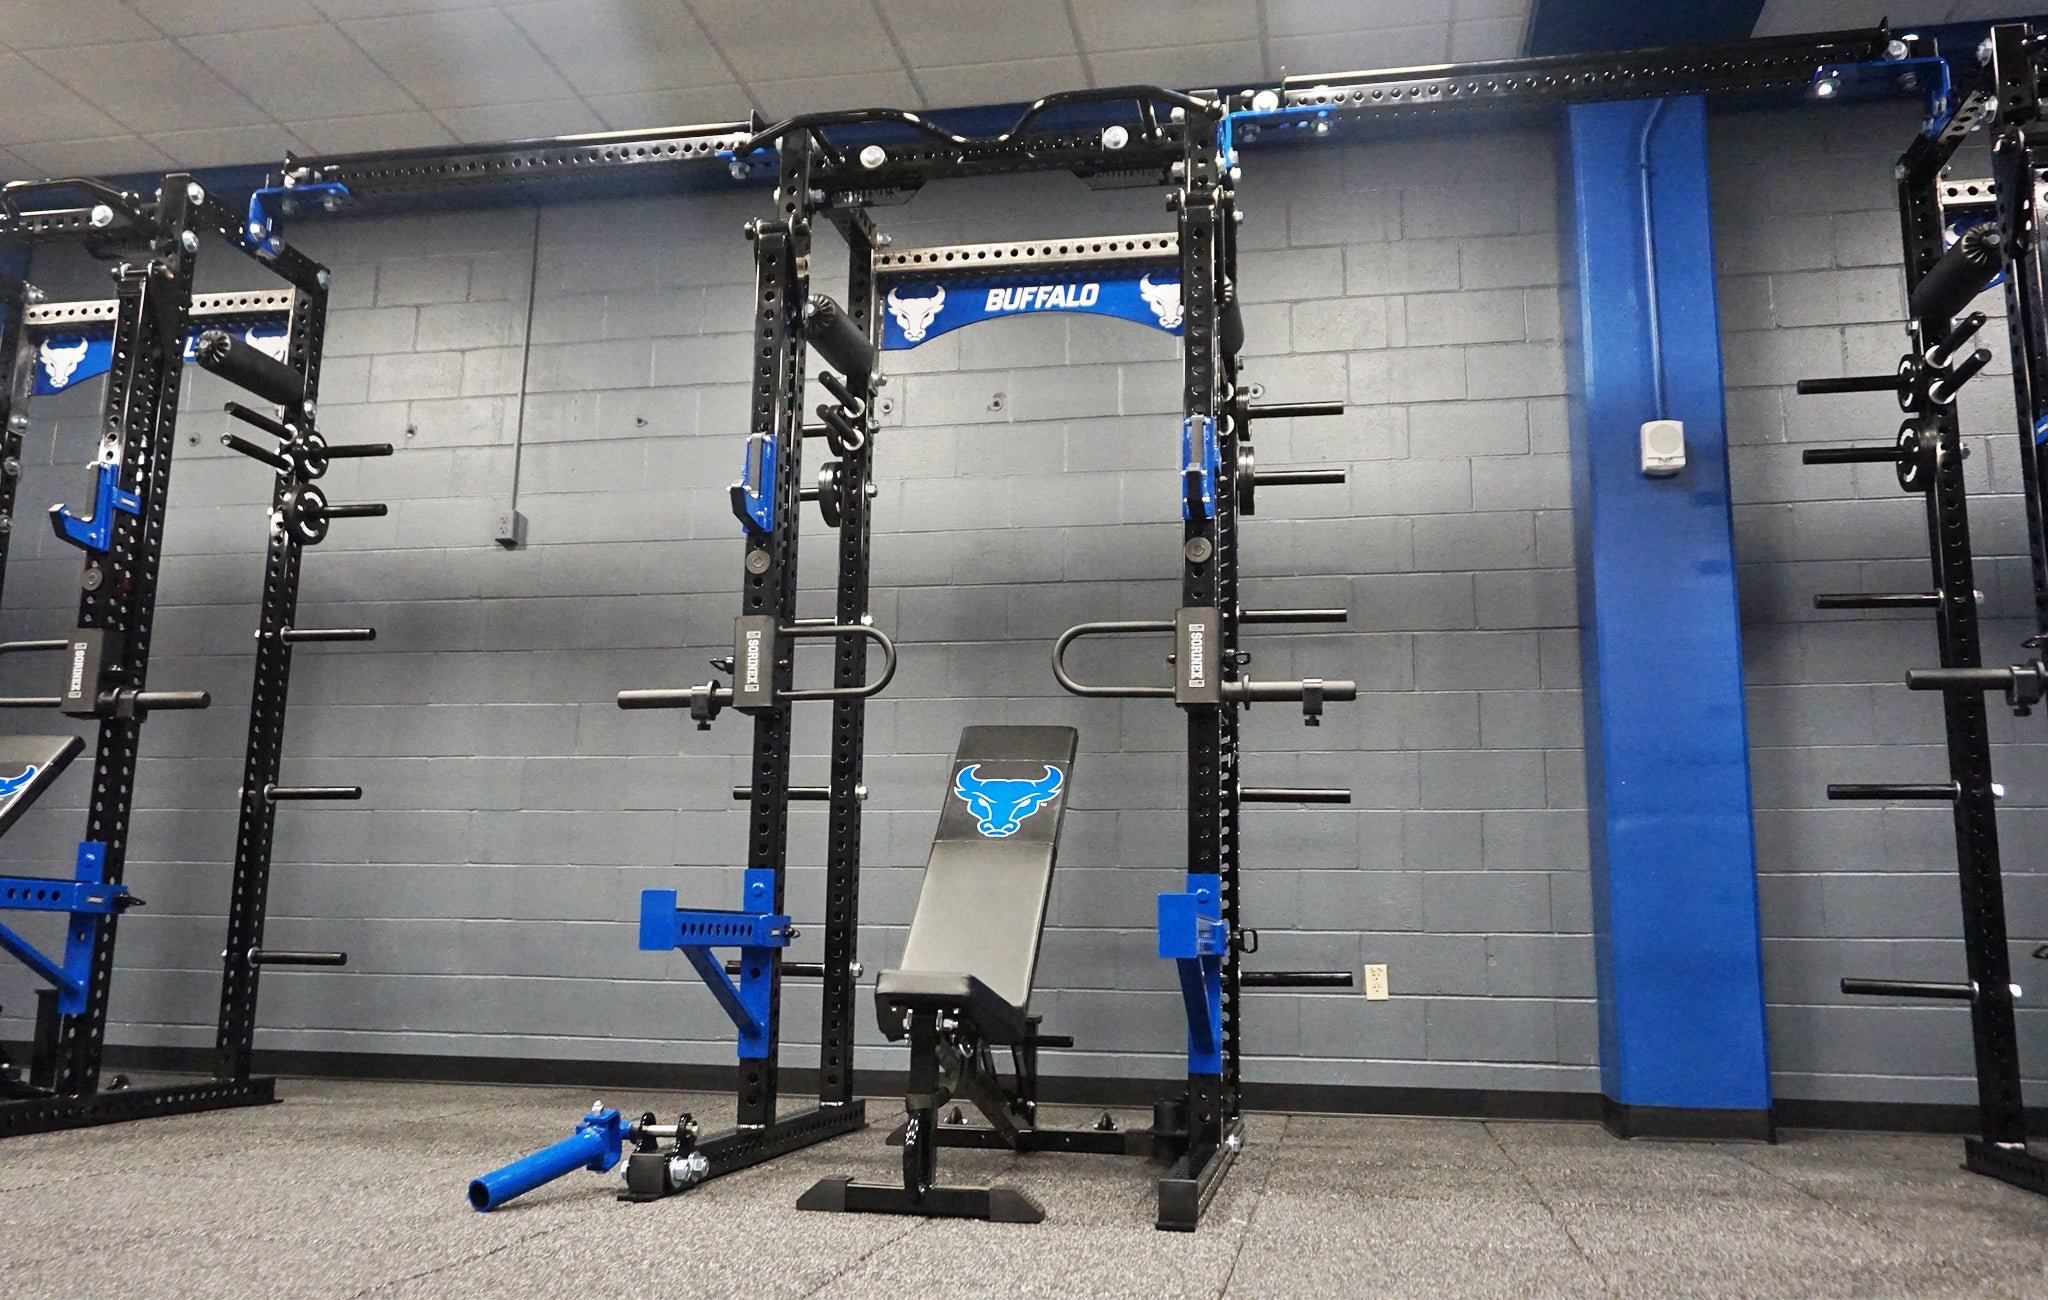 University of Buffalo strength and conditioning